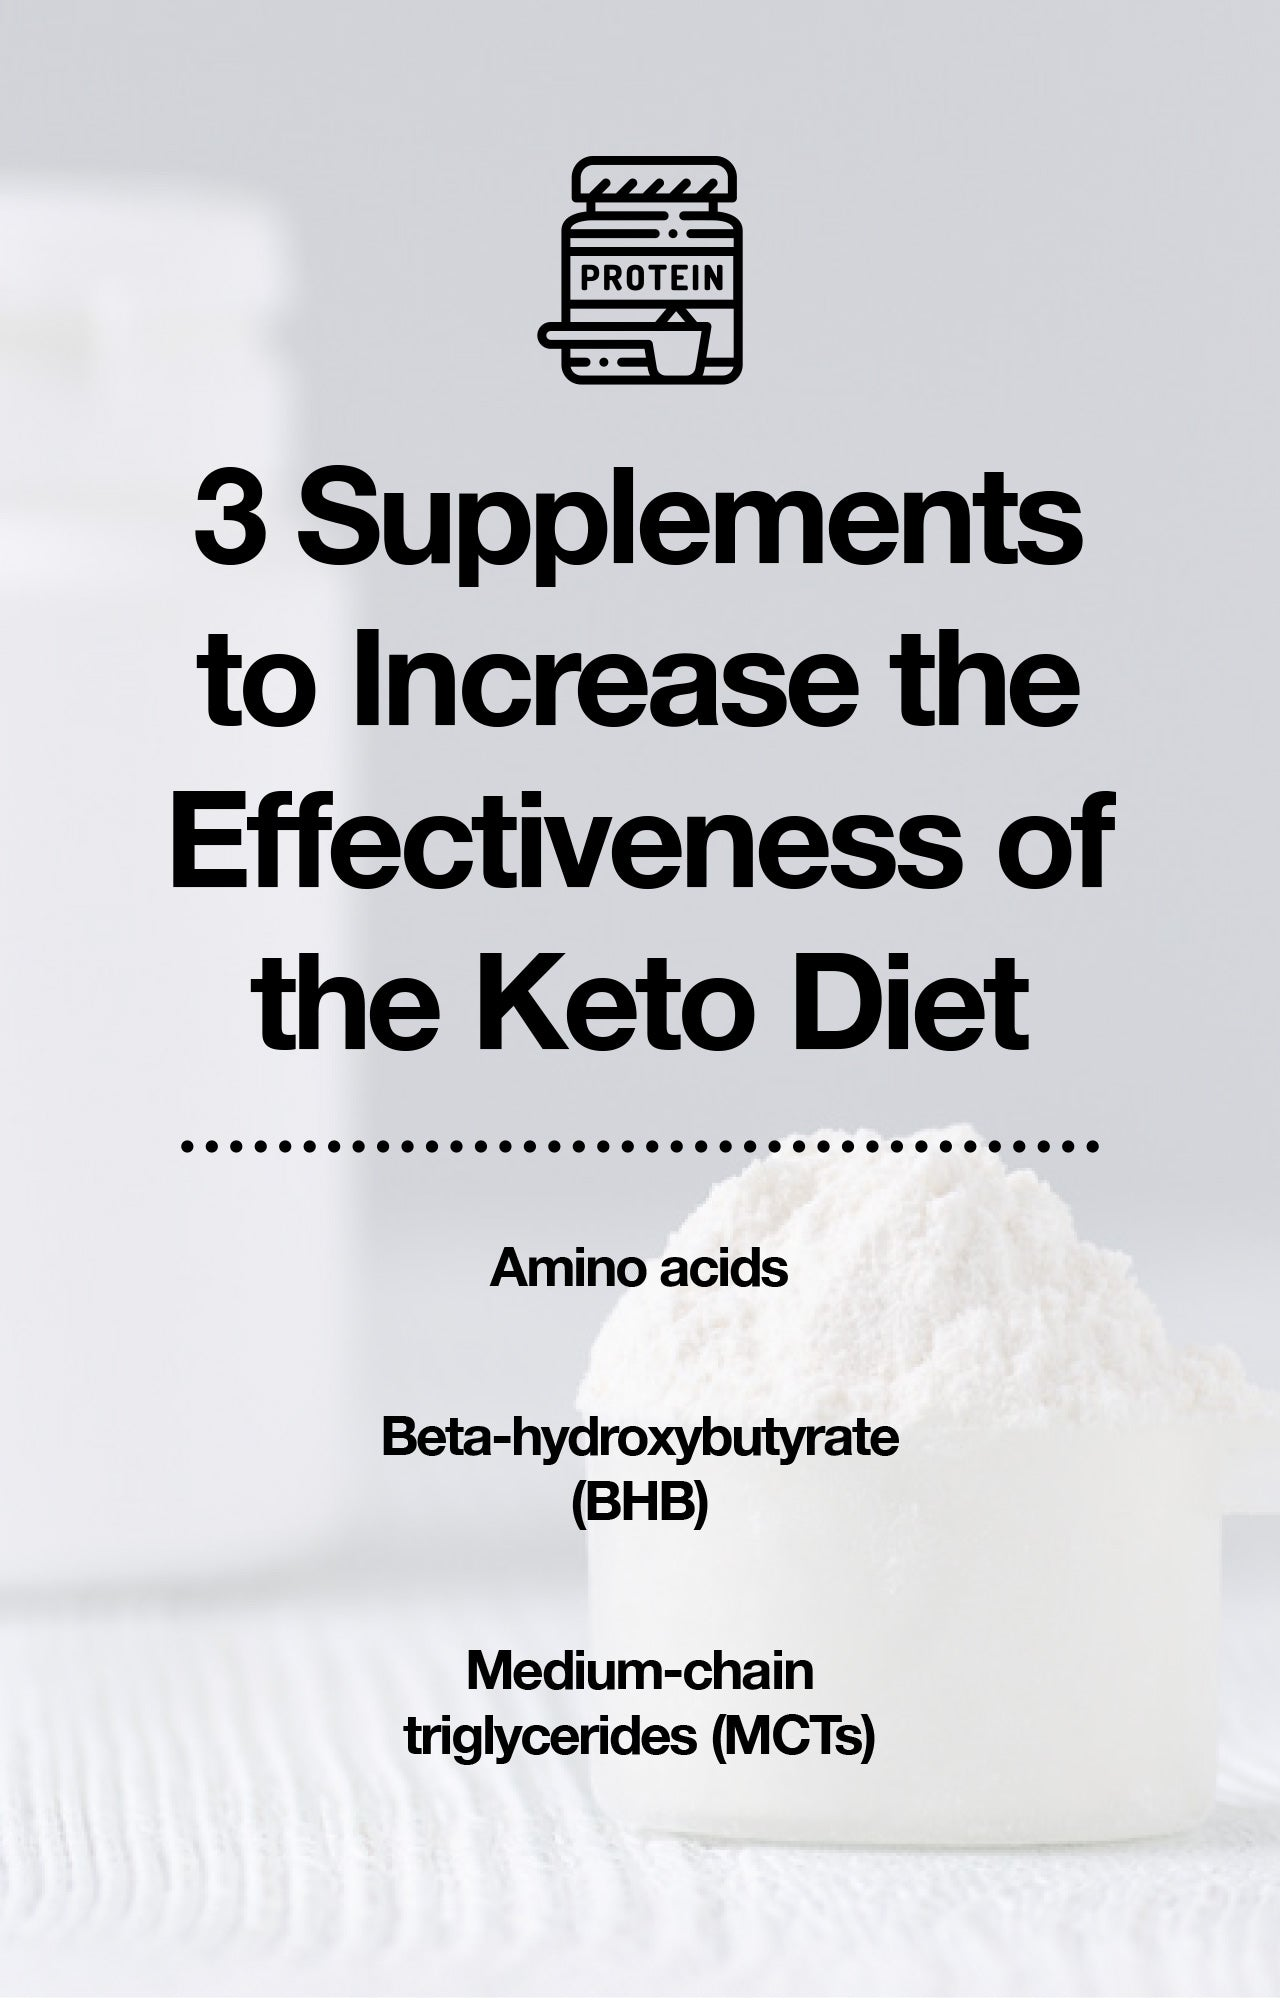 Supplements for the keto diet